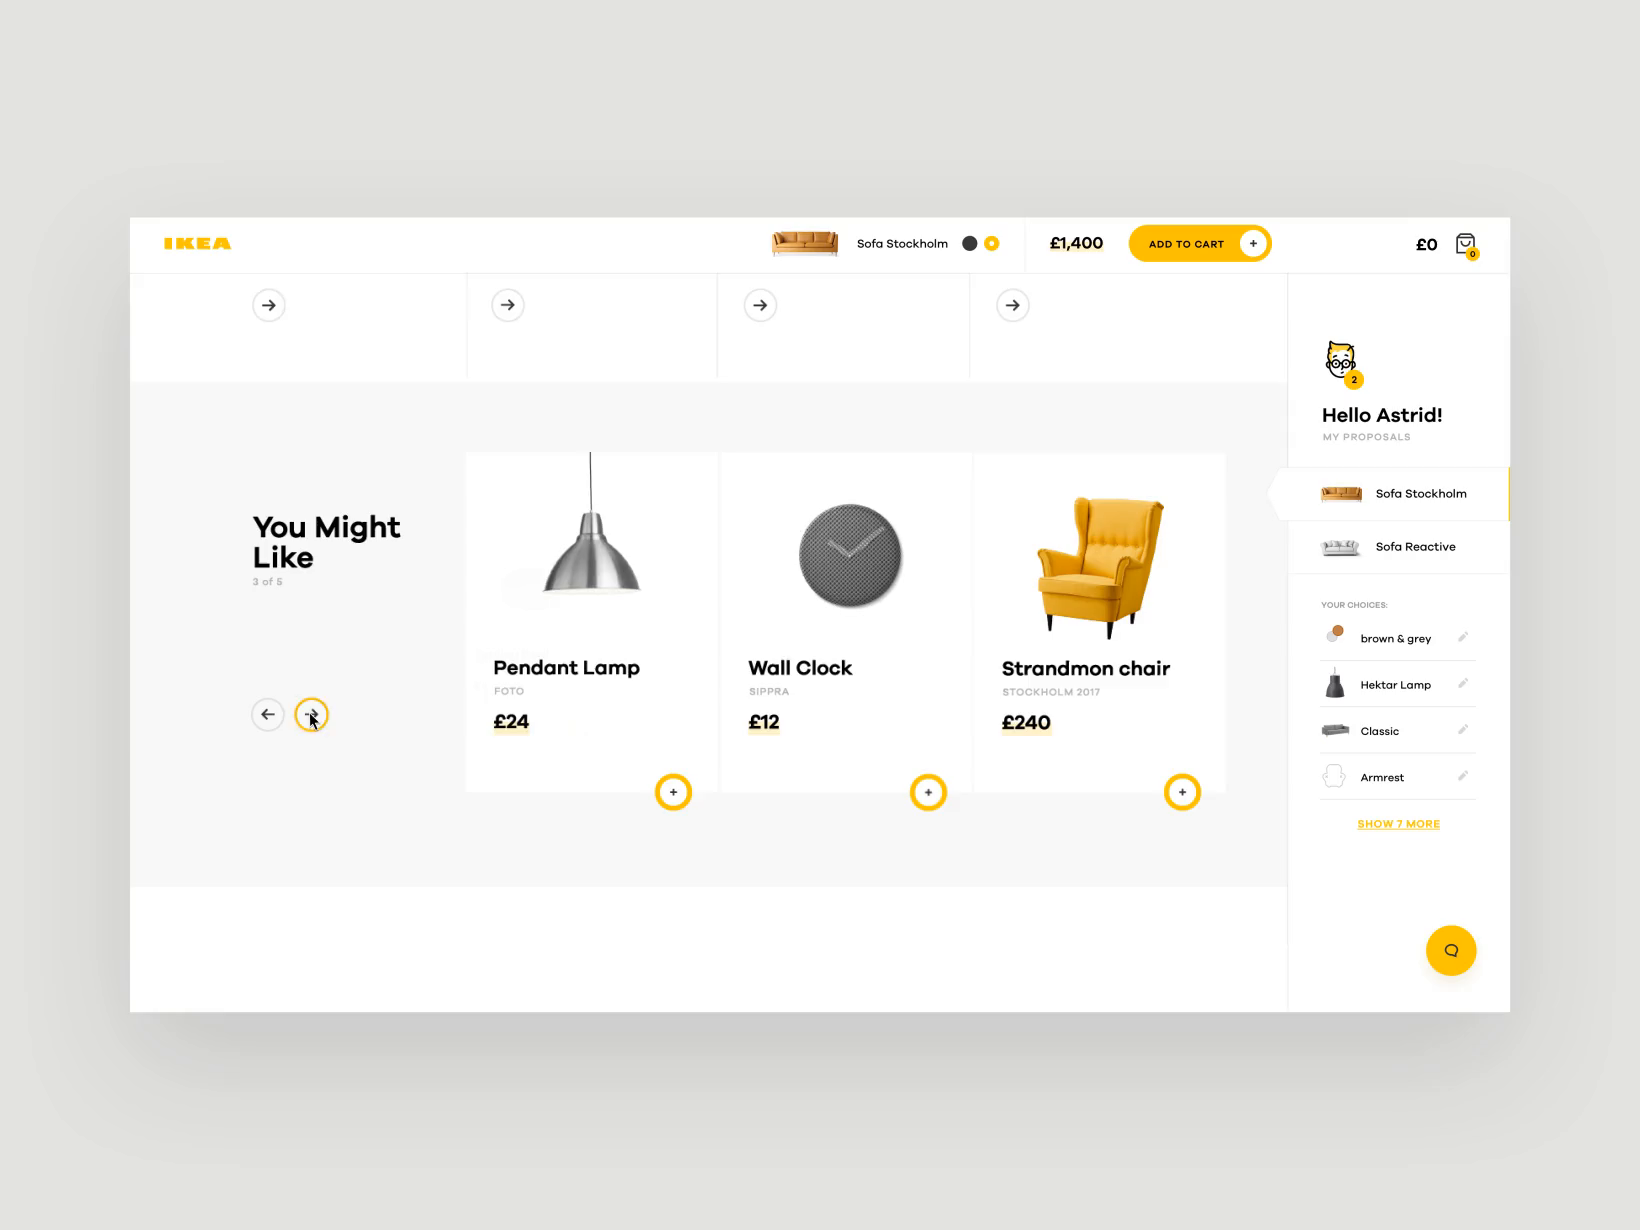 Dribbble ikea 3 hd 60fps